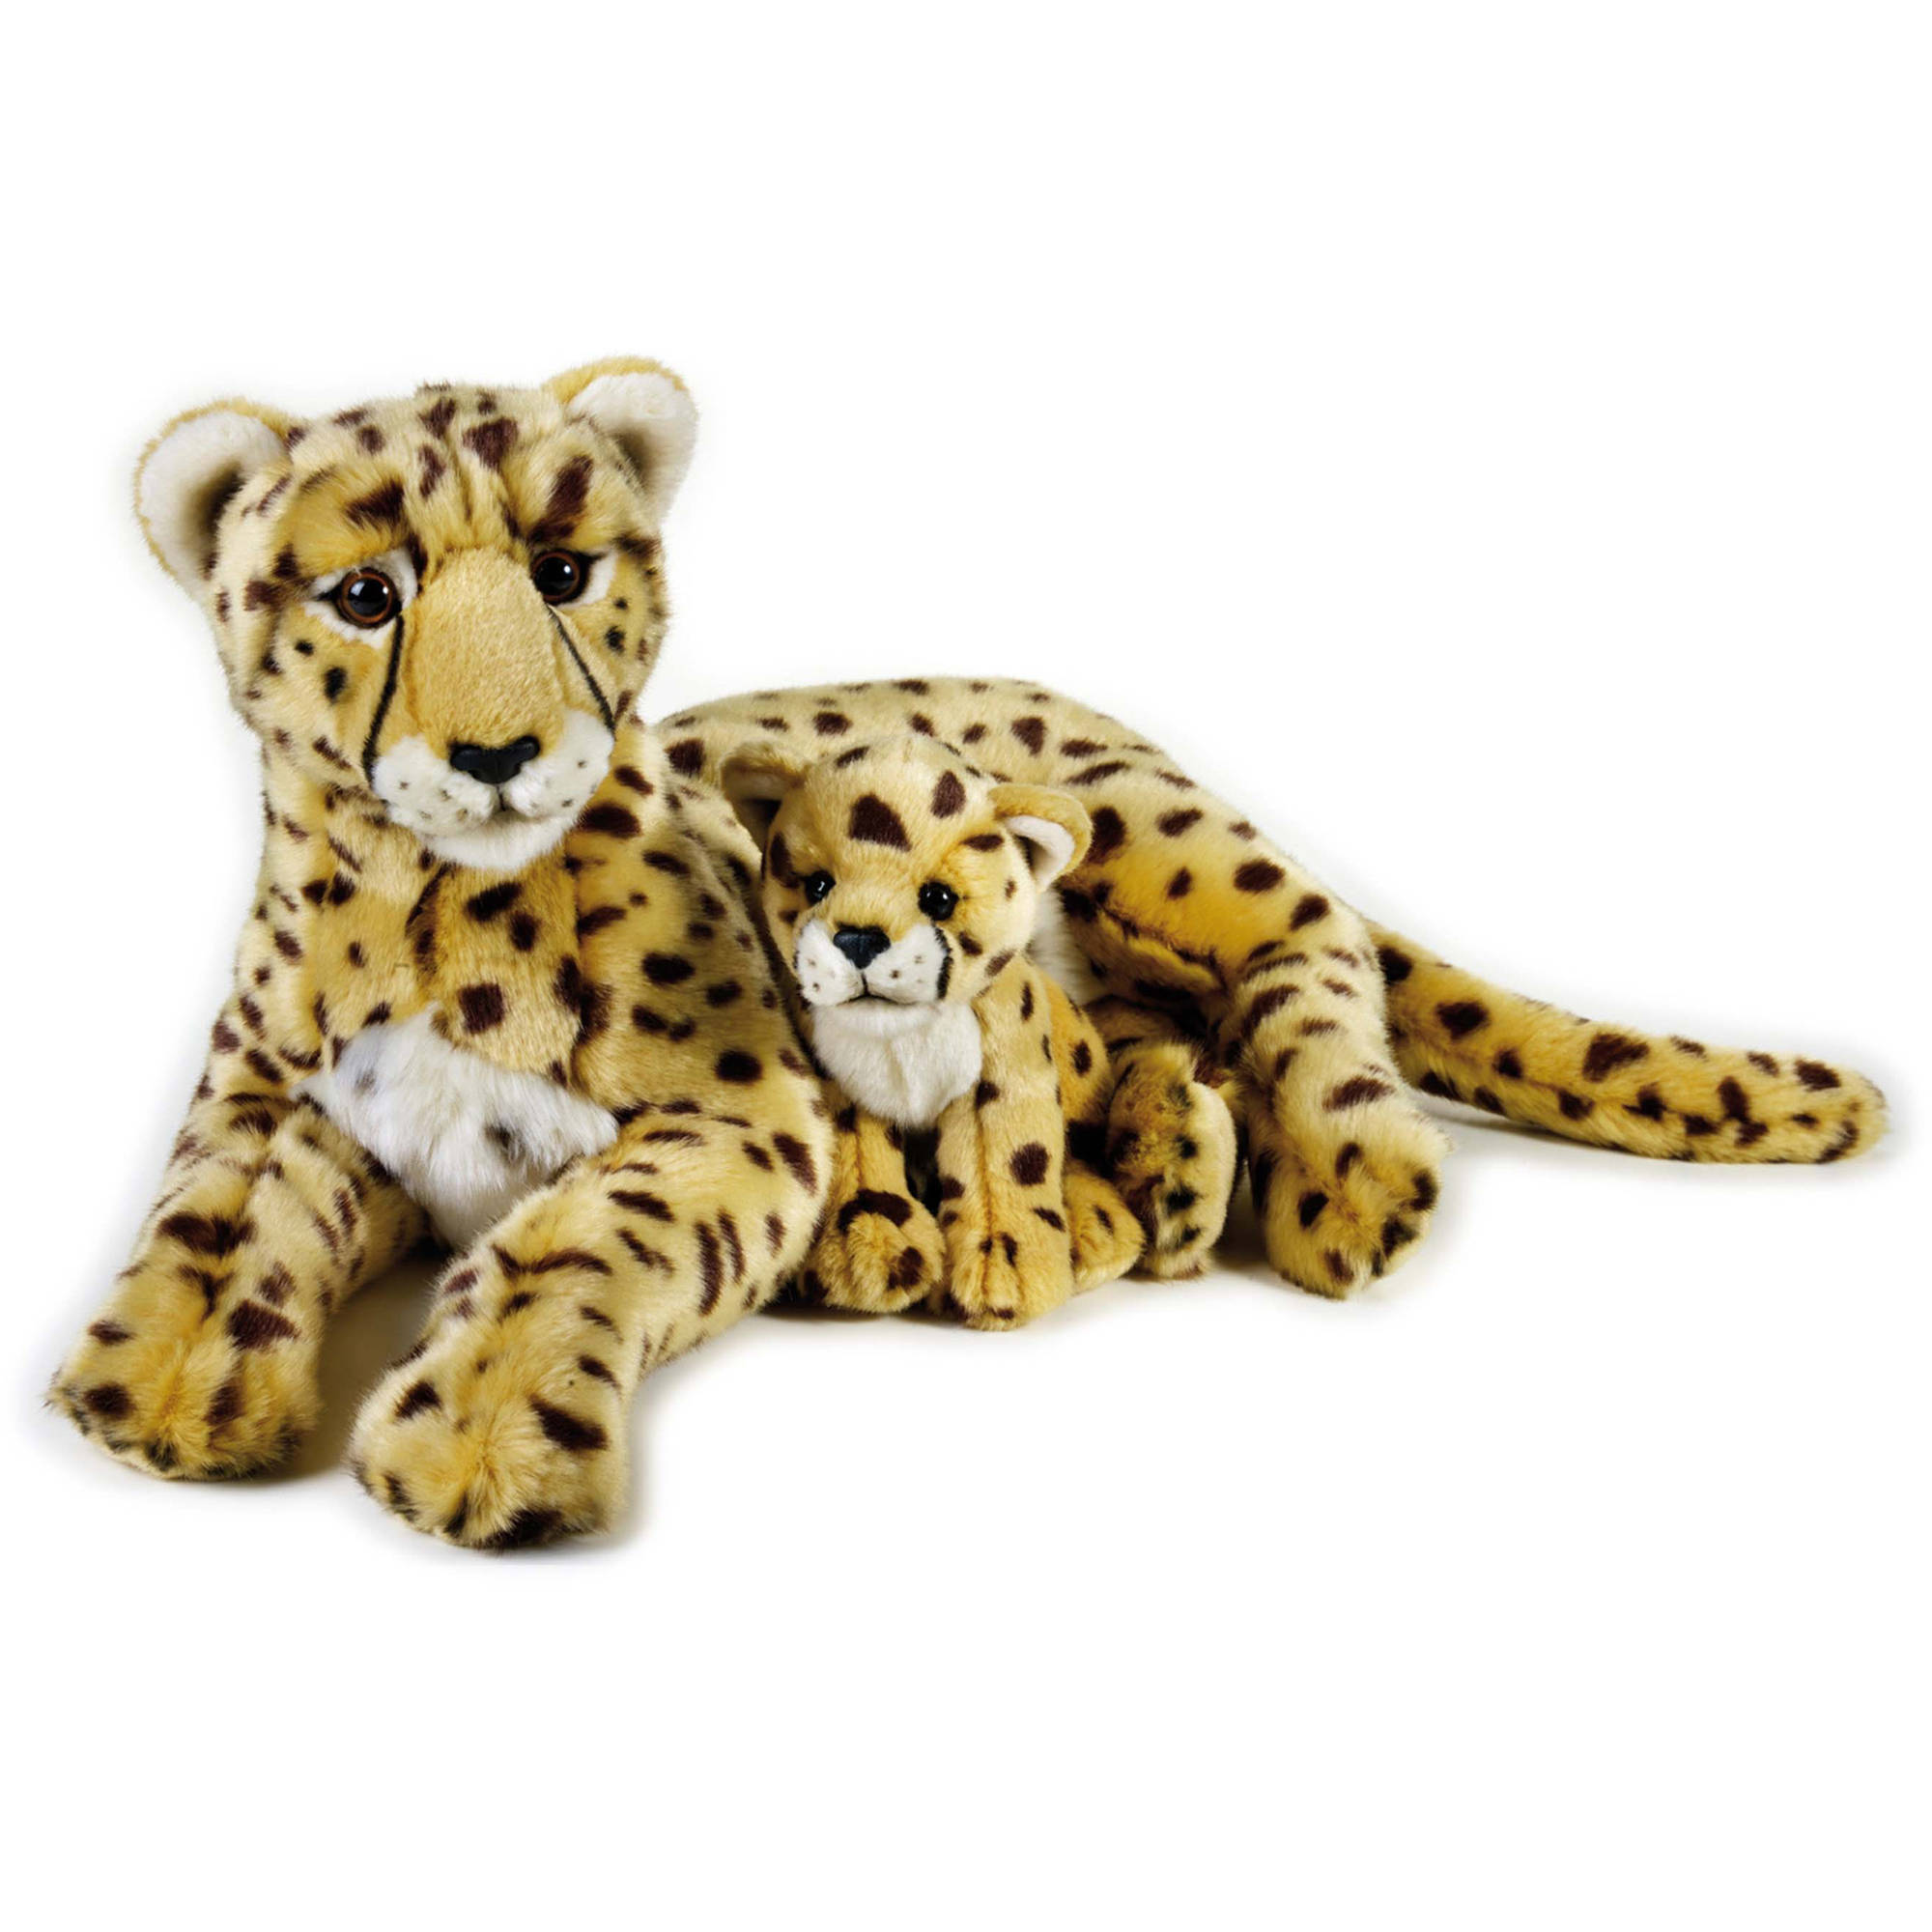 Lelly National Geographic Plush, CHeetah with Baby by Venturelli